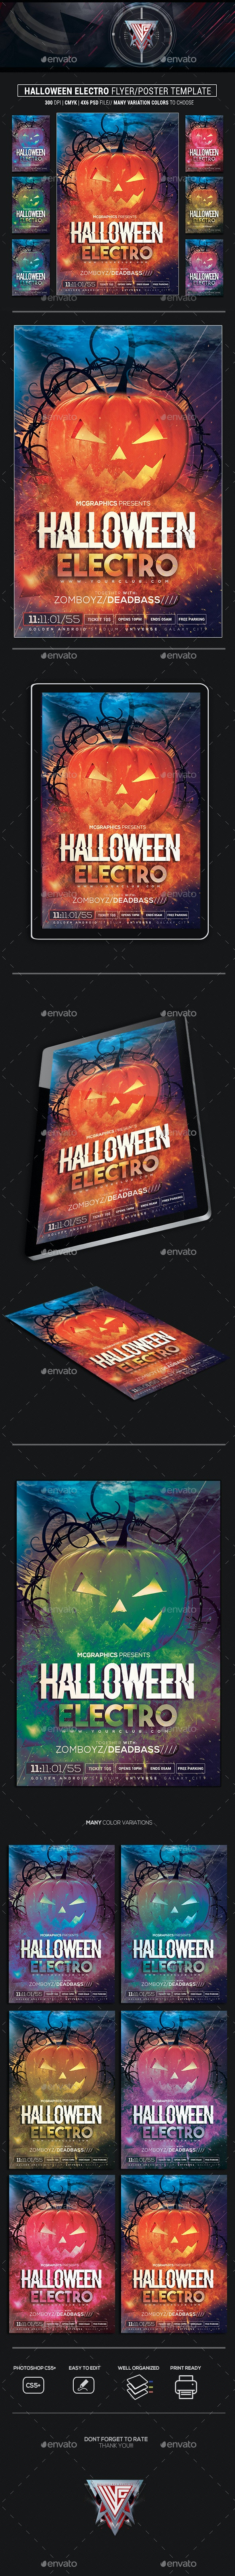 Halloween Electro Photoshop Flyer Template - Clubs & Parties Events